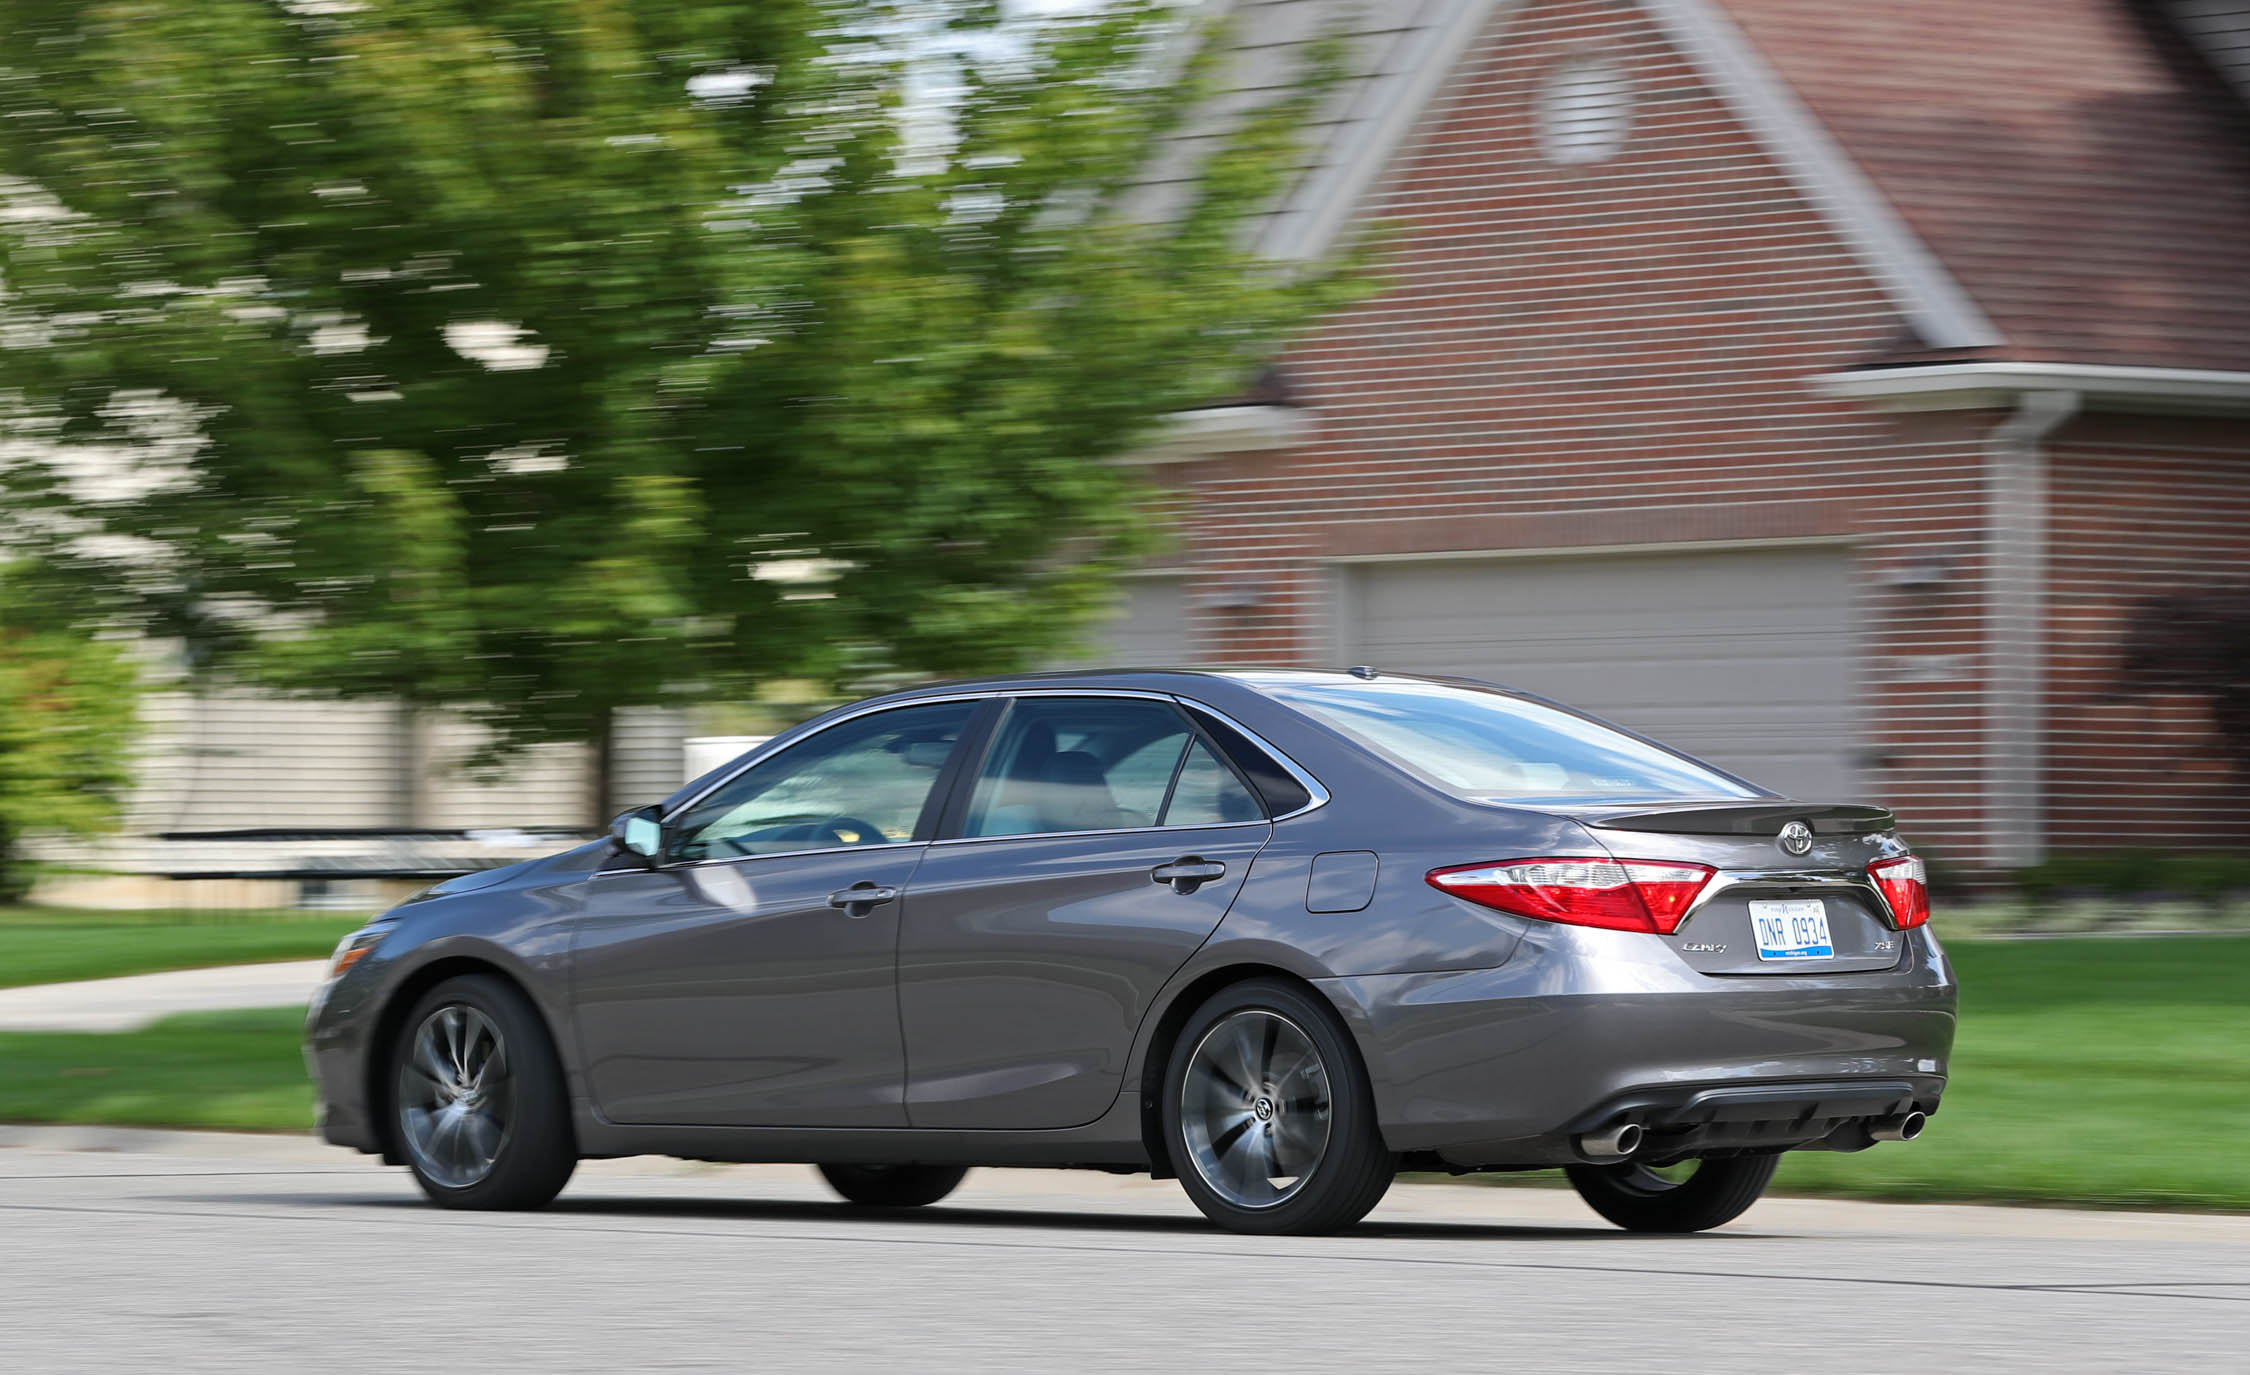 2017 Toyota Camry Test Drive Rear And Side View (Photo 32 of 37)